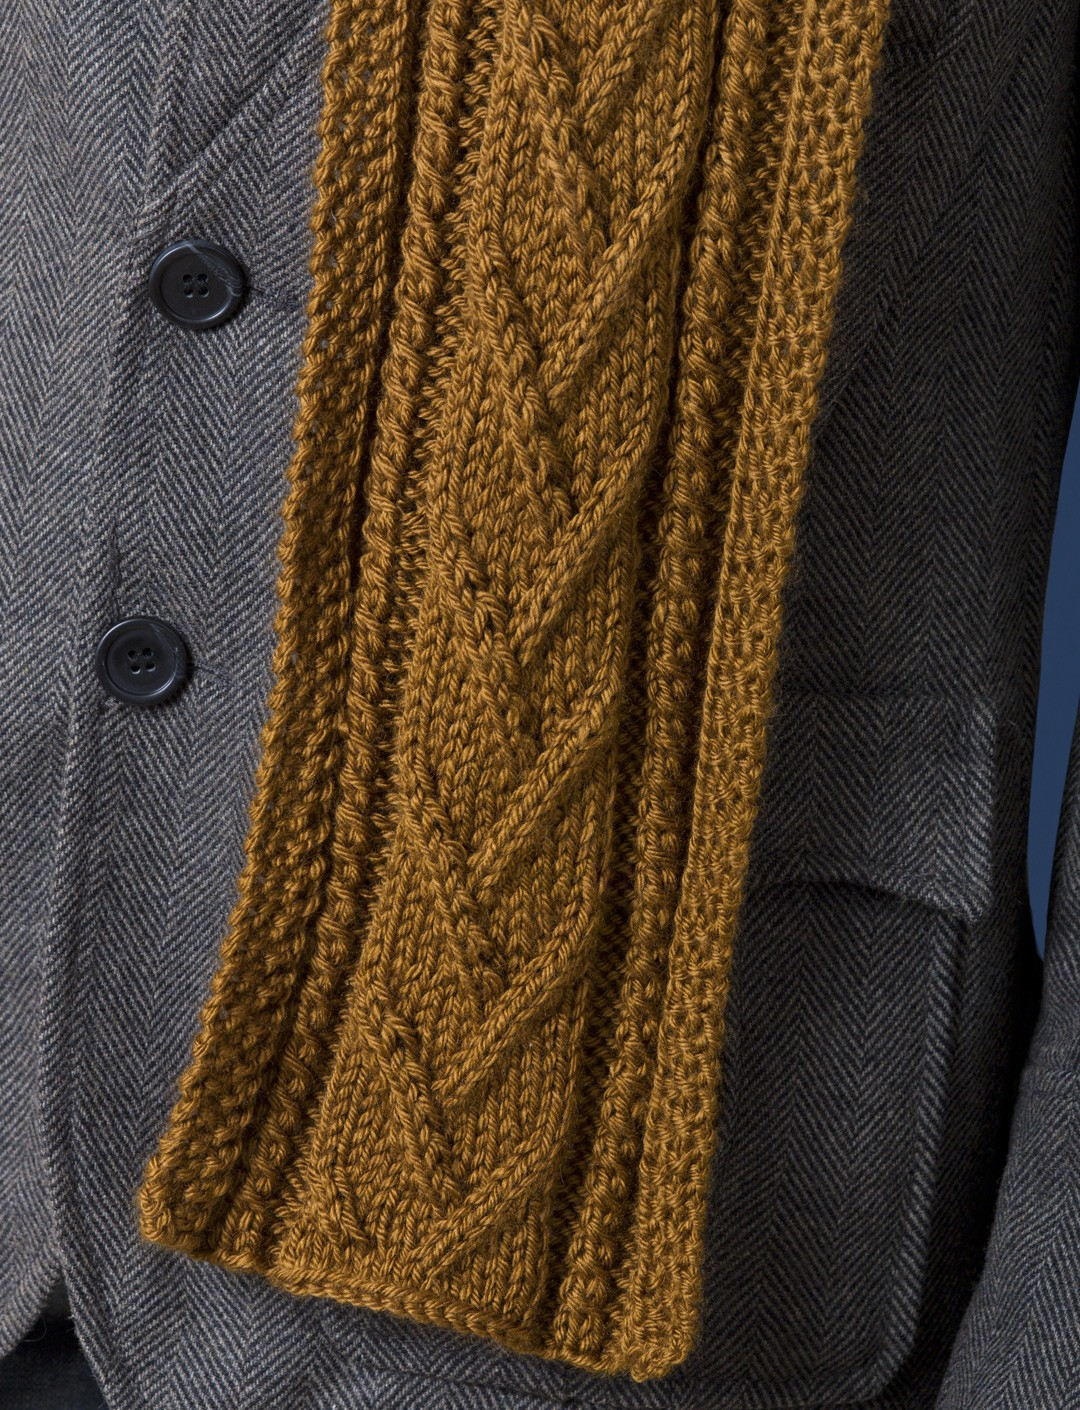 Free Cable Knitting Patterns For Scarves : Caron Combo Cable Scarf, Knit Pattern Yarnspirations